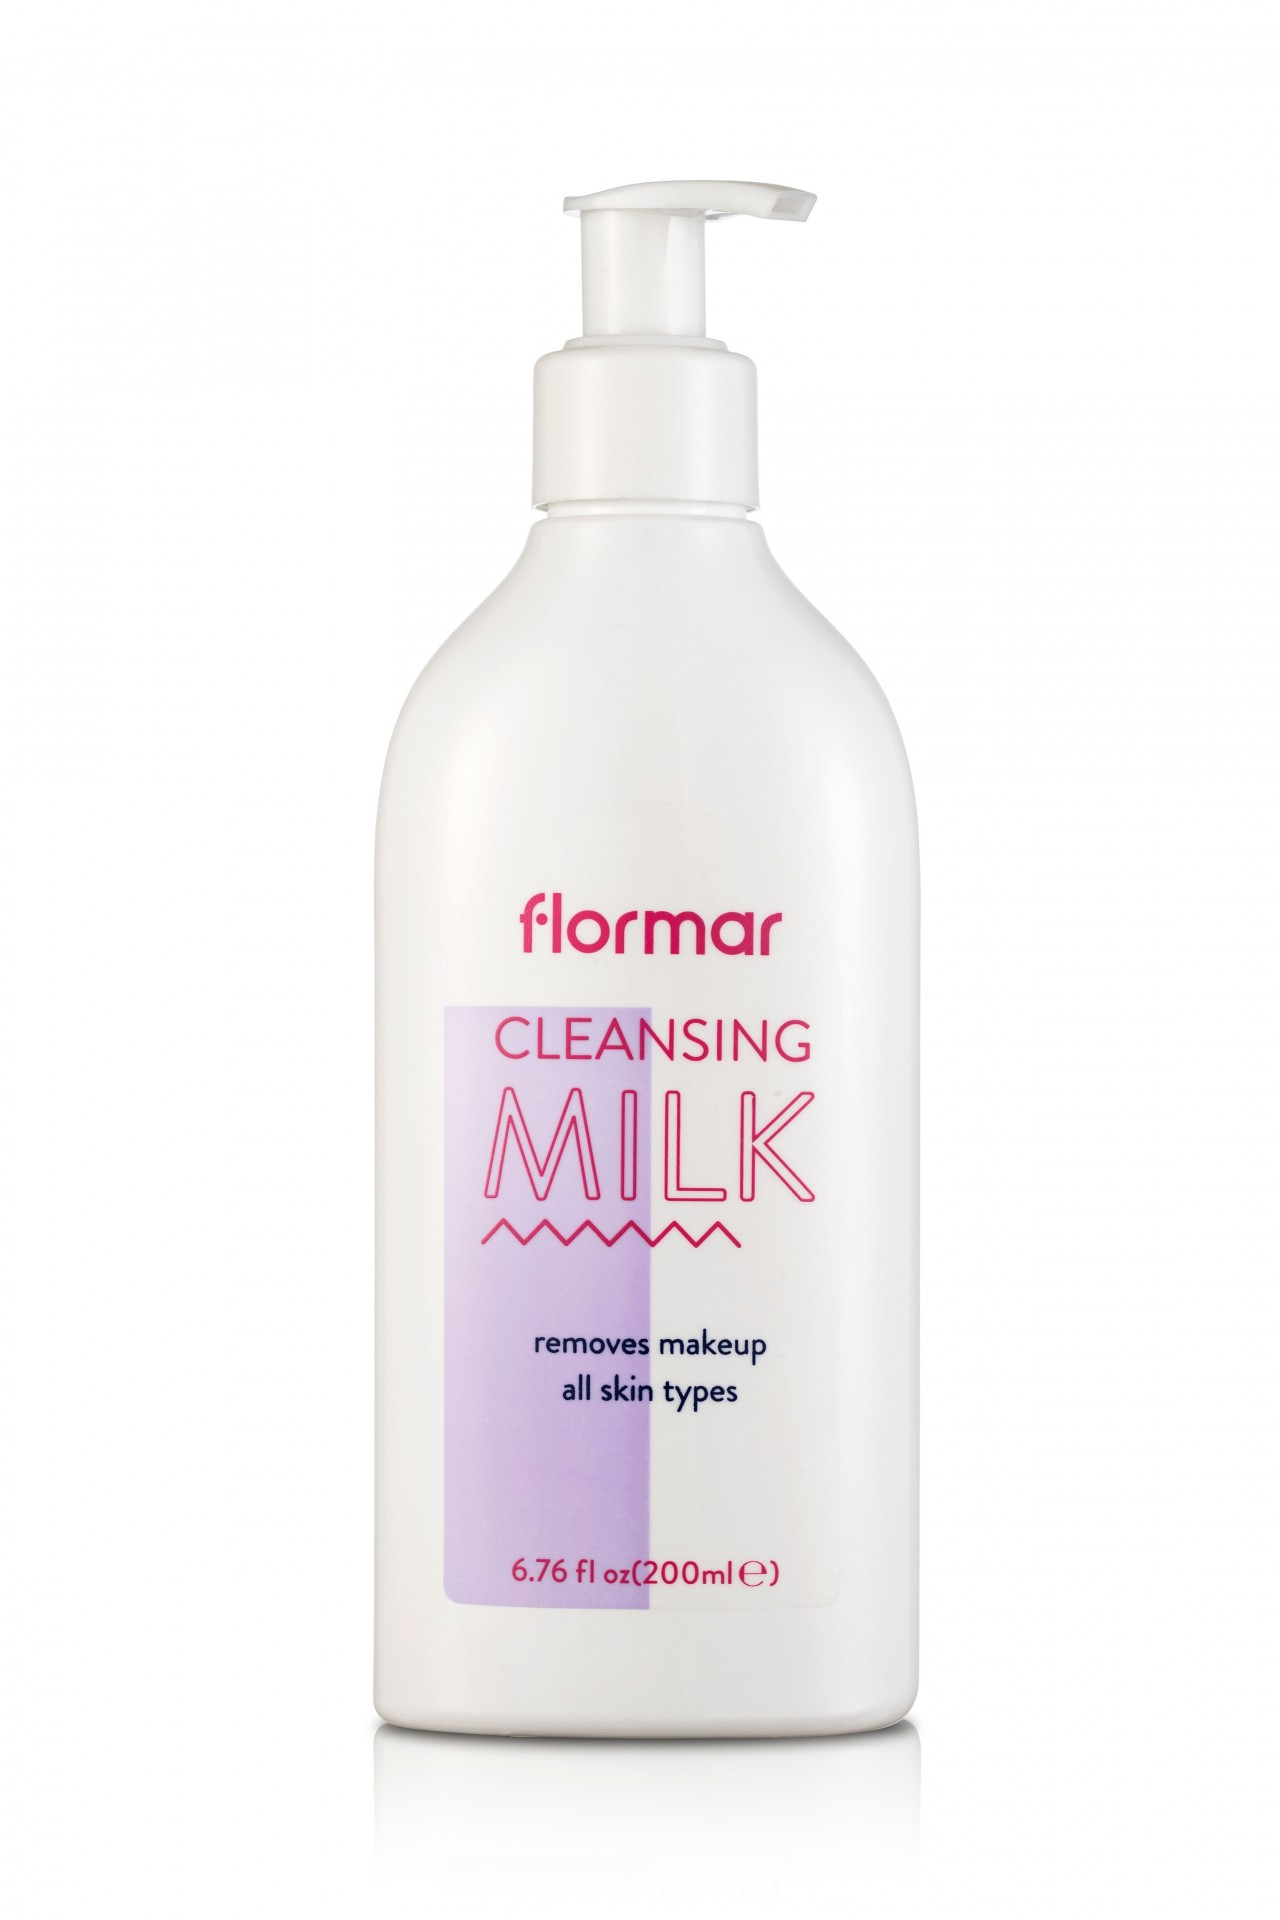 FLORMAR - CLEANSING MILK